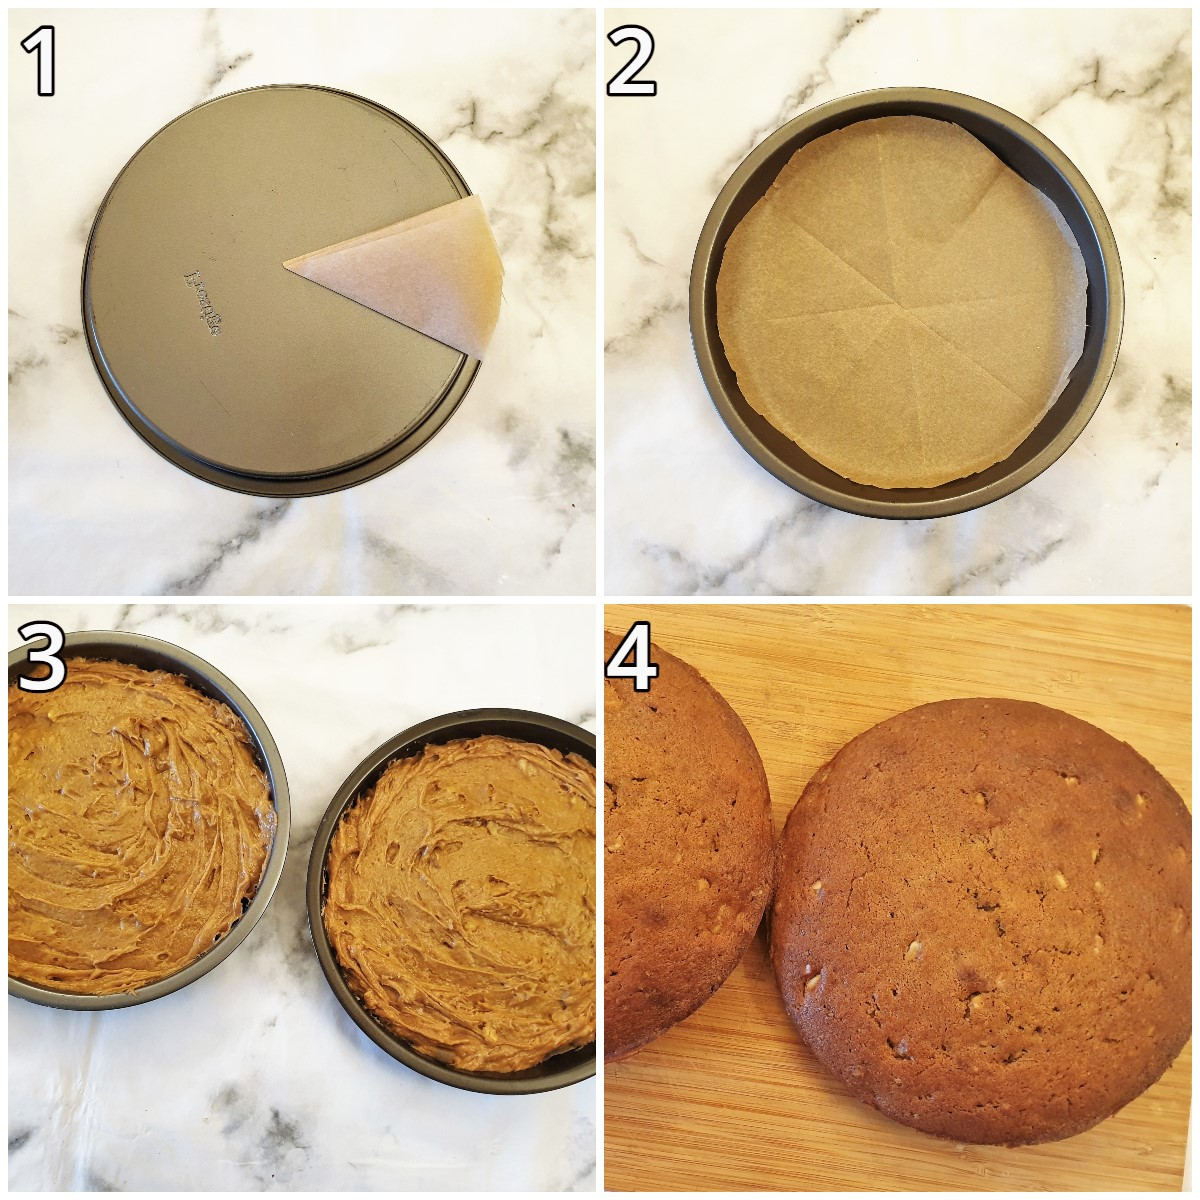 Steps for lining the baking pans and baking the cake.